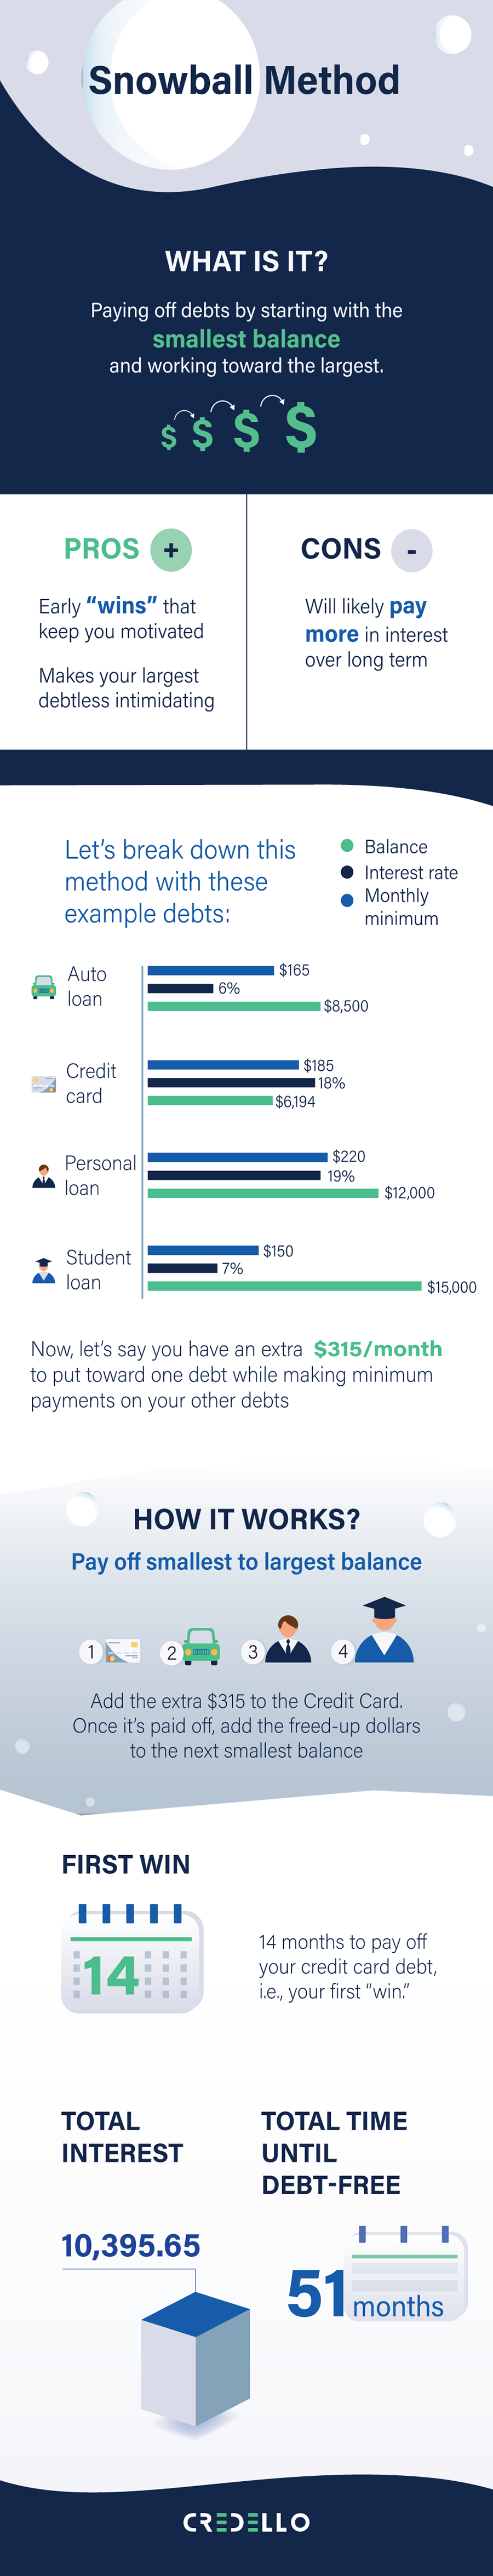 What is the debt snowball method and how does it work?